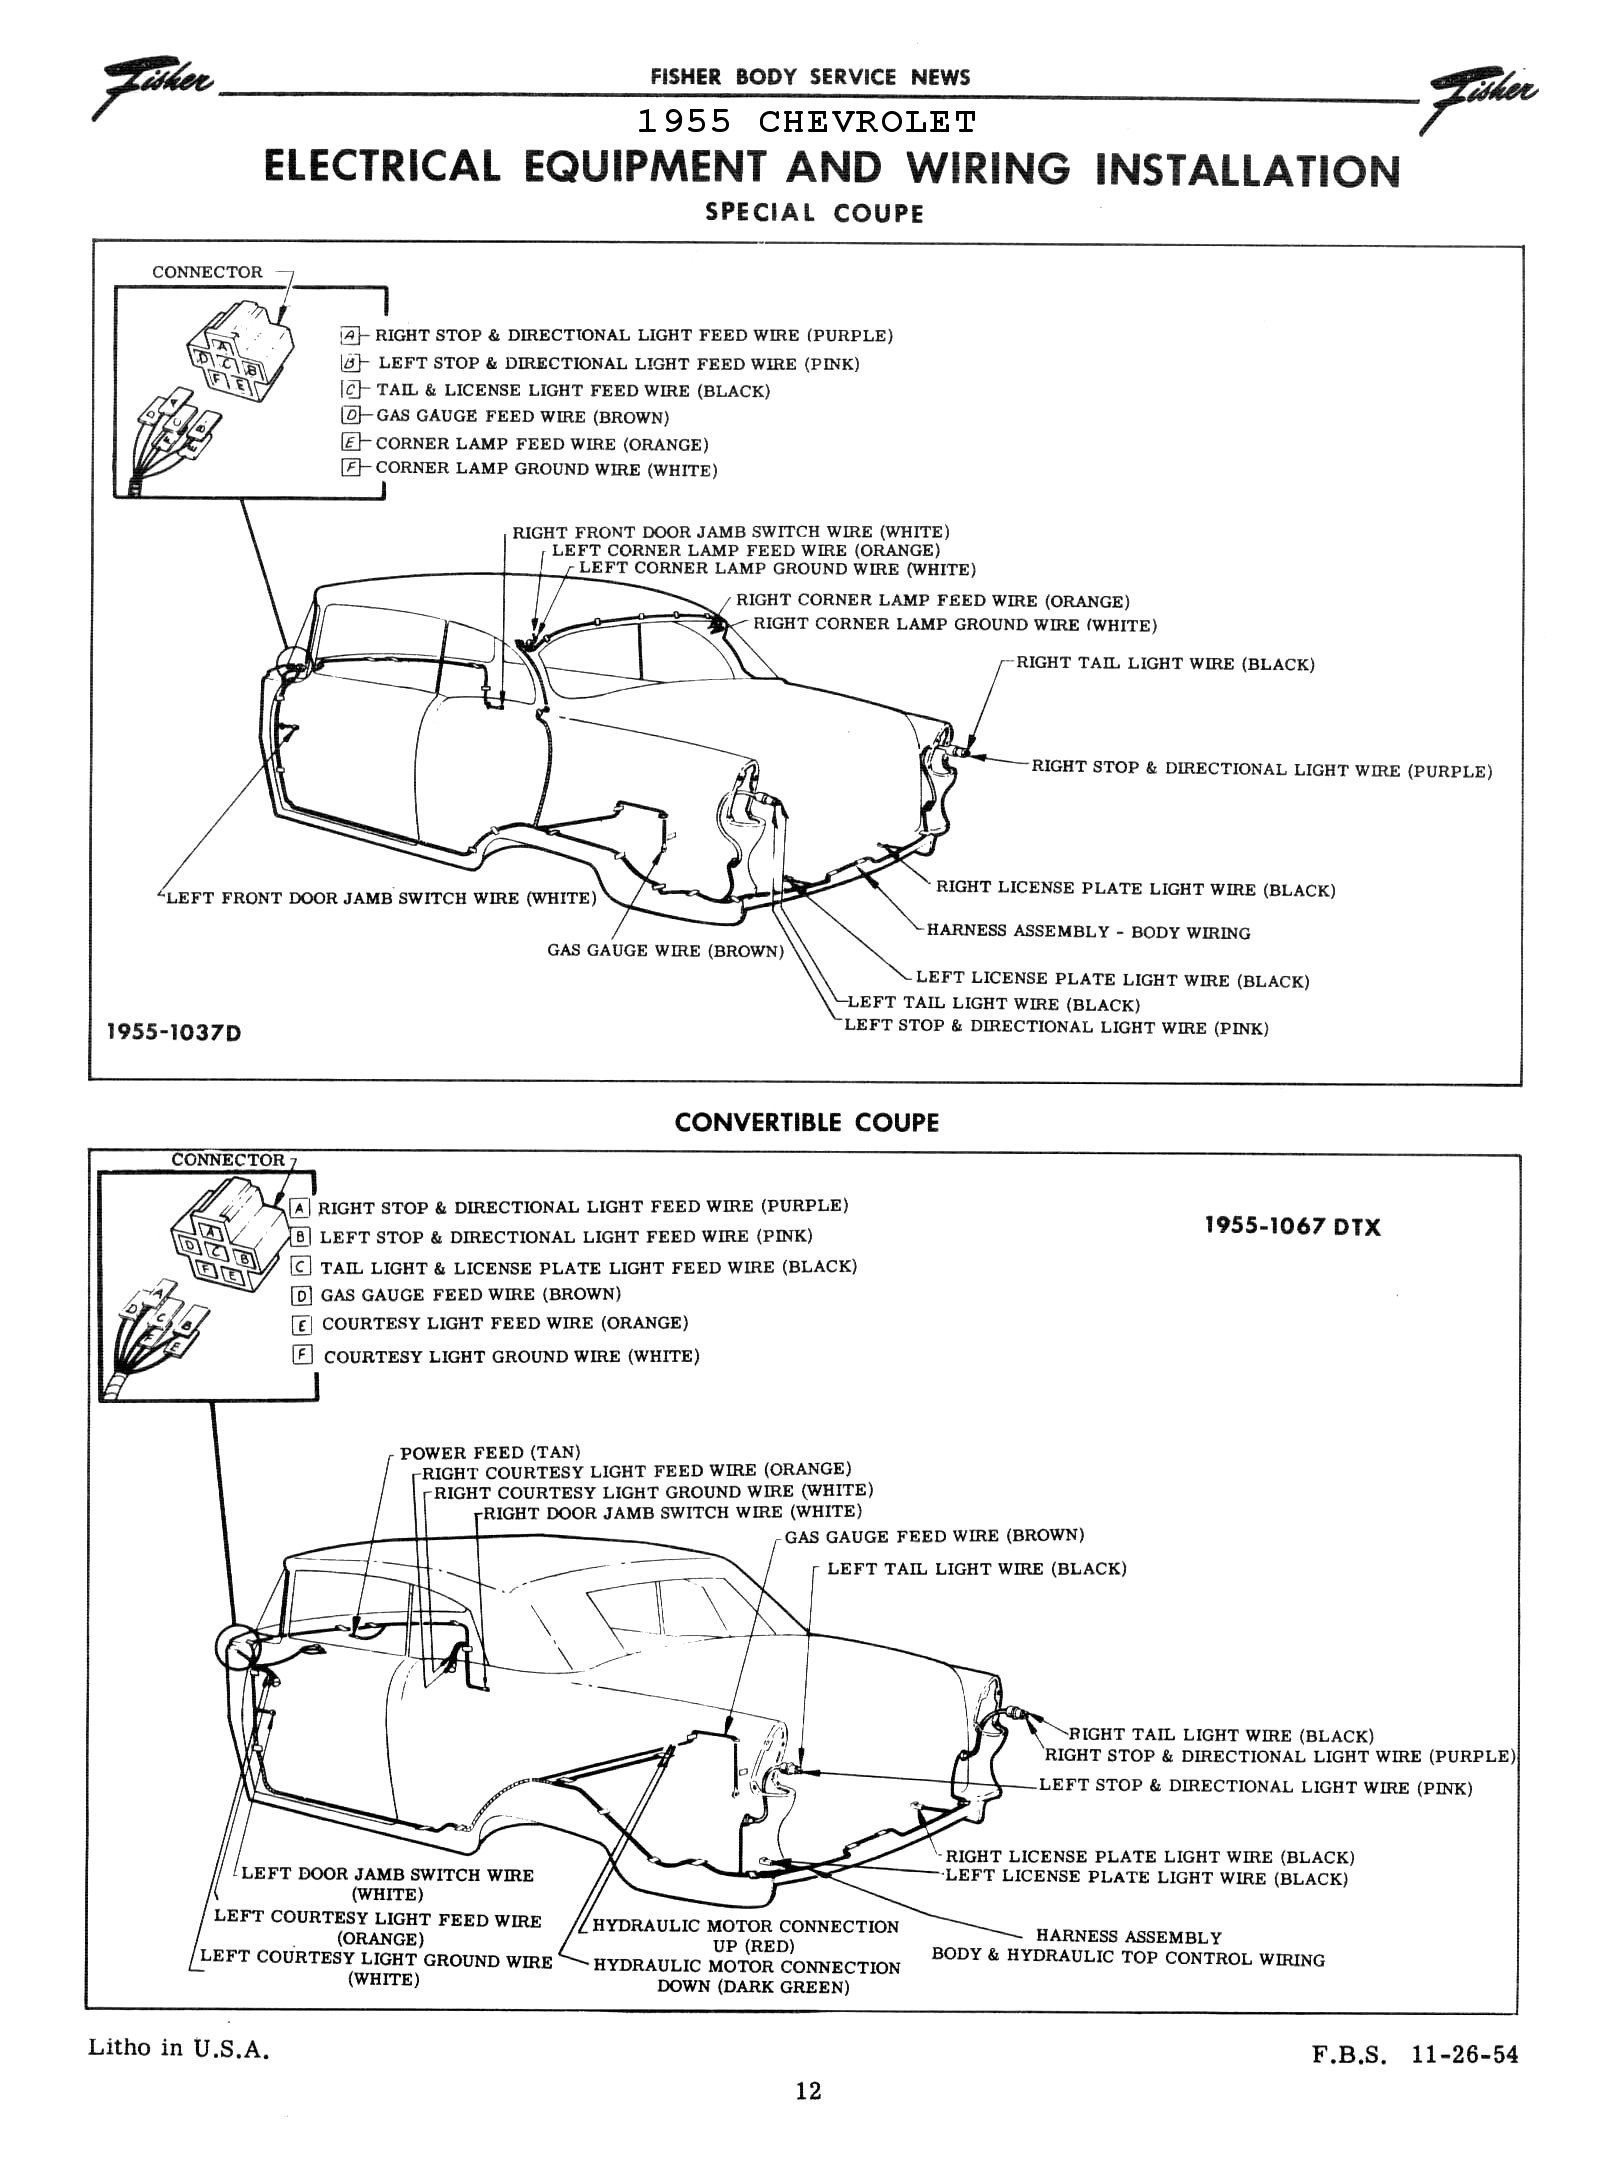 55fsn140612 chevy wiring diagrams Chevy Truck Wiring Diagram at bayanpartner.co